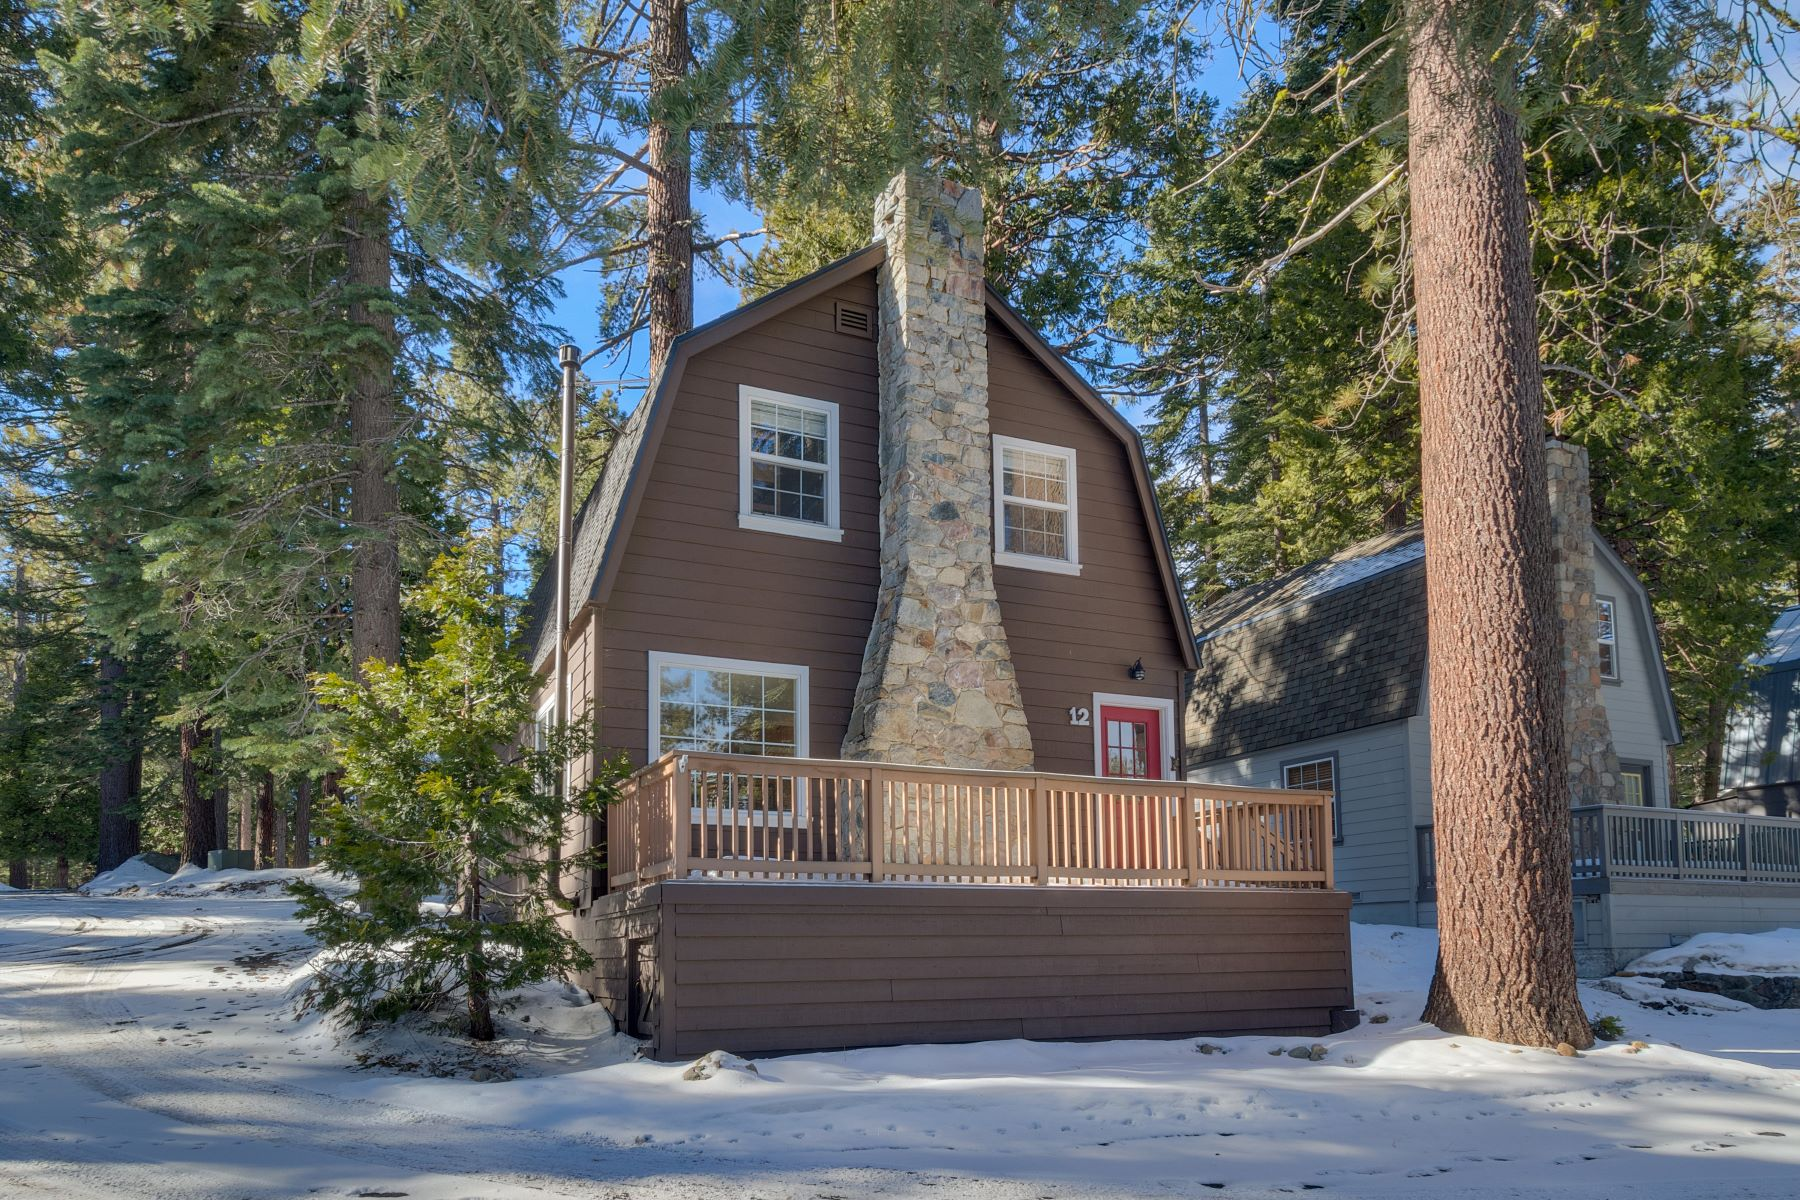 Single Family Homes for Sale at Stunning Sonoma Pines Cabin 7090 W. Lake Blvd #12 Tahoma, California 96142 United States